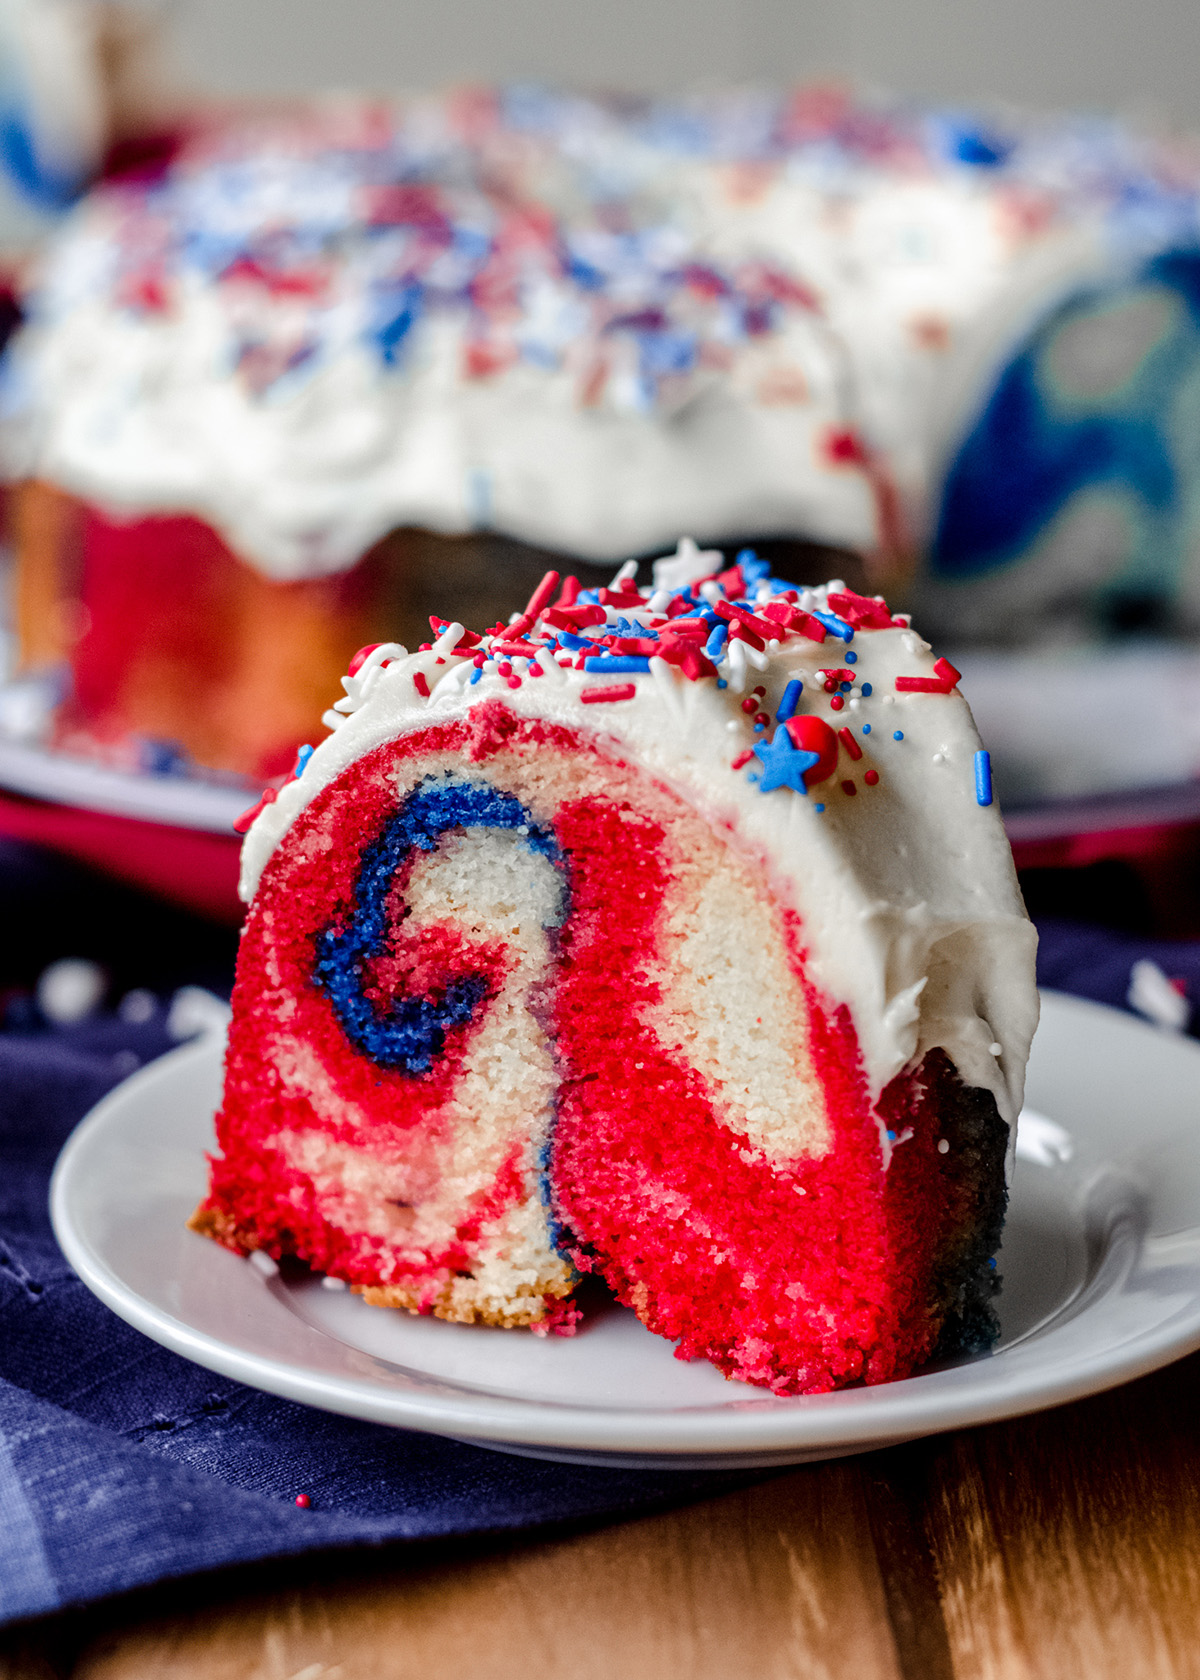 slice of red white and blue swirl cake on a plate